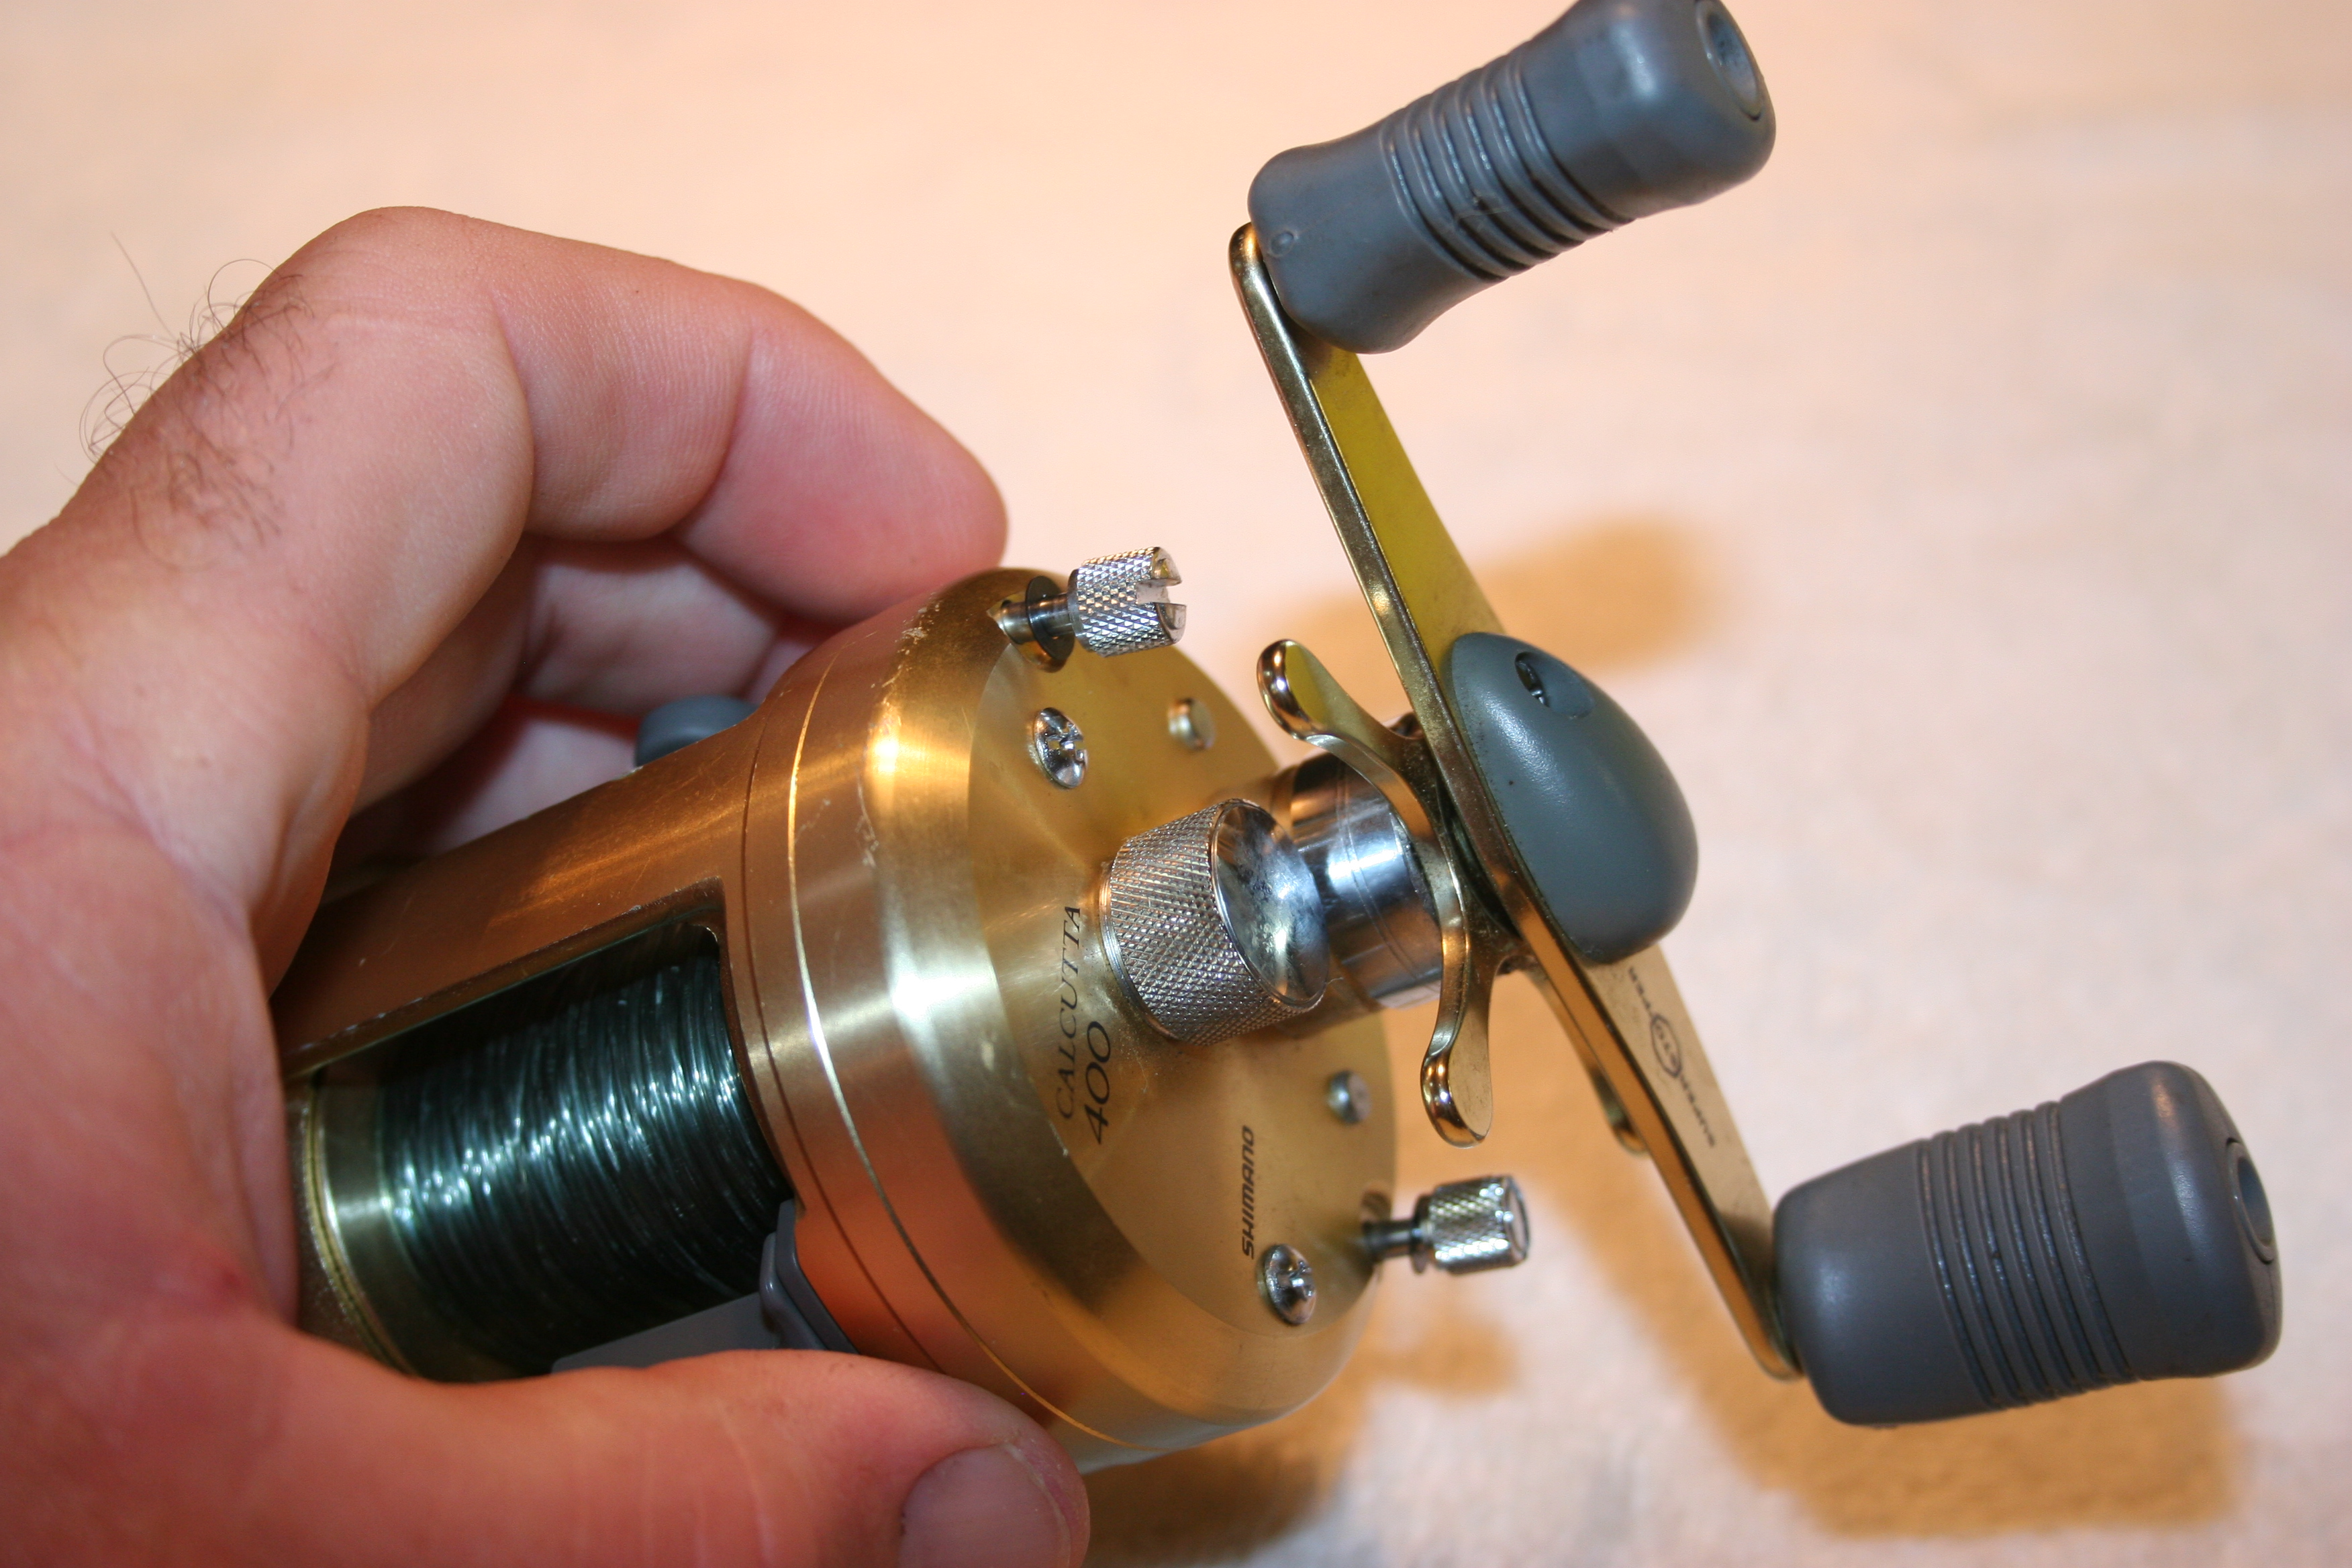 Cleaning a Baitcasting Reel